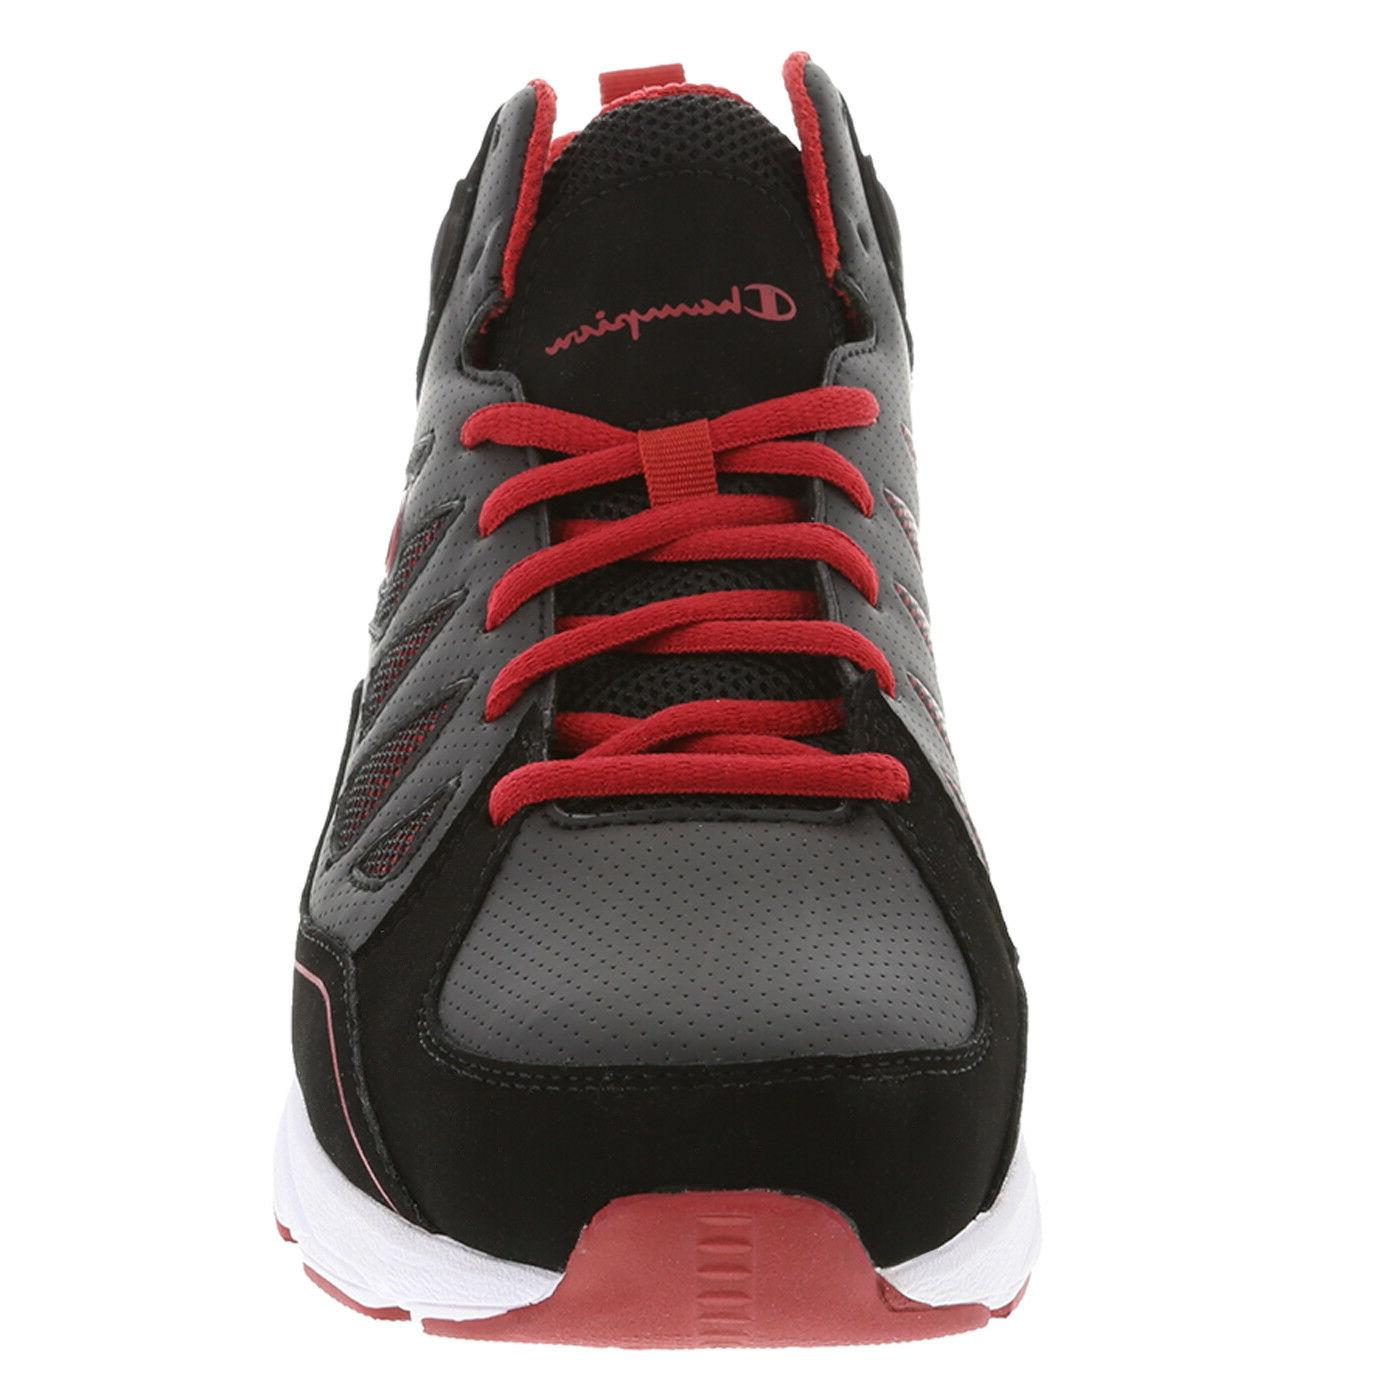 8b113e1d9dc Champion Men s Playmaker Basketball Shoe